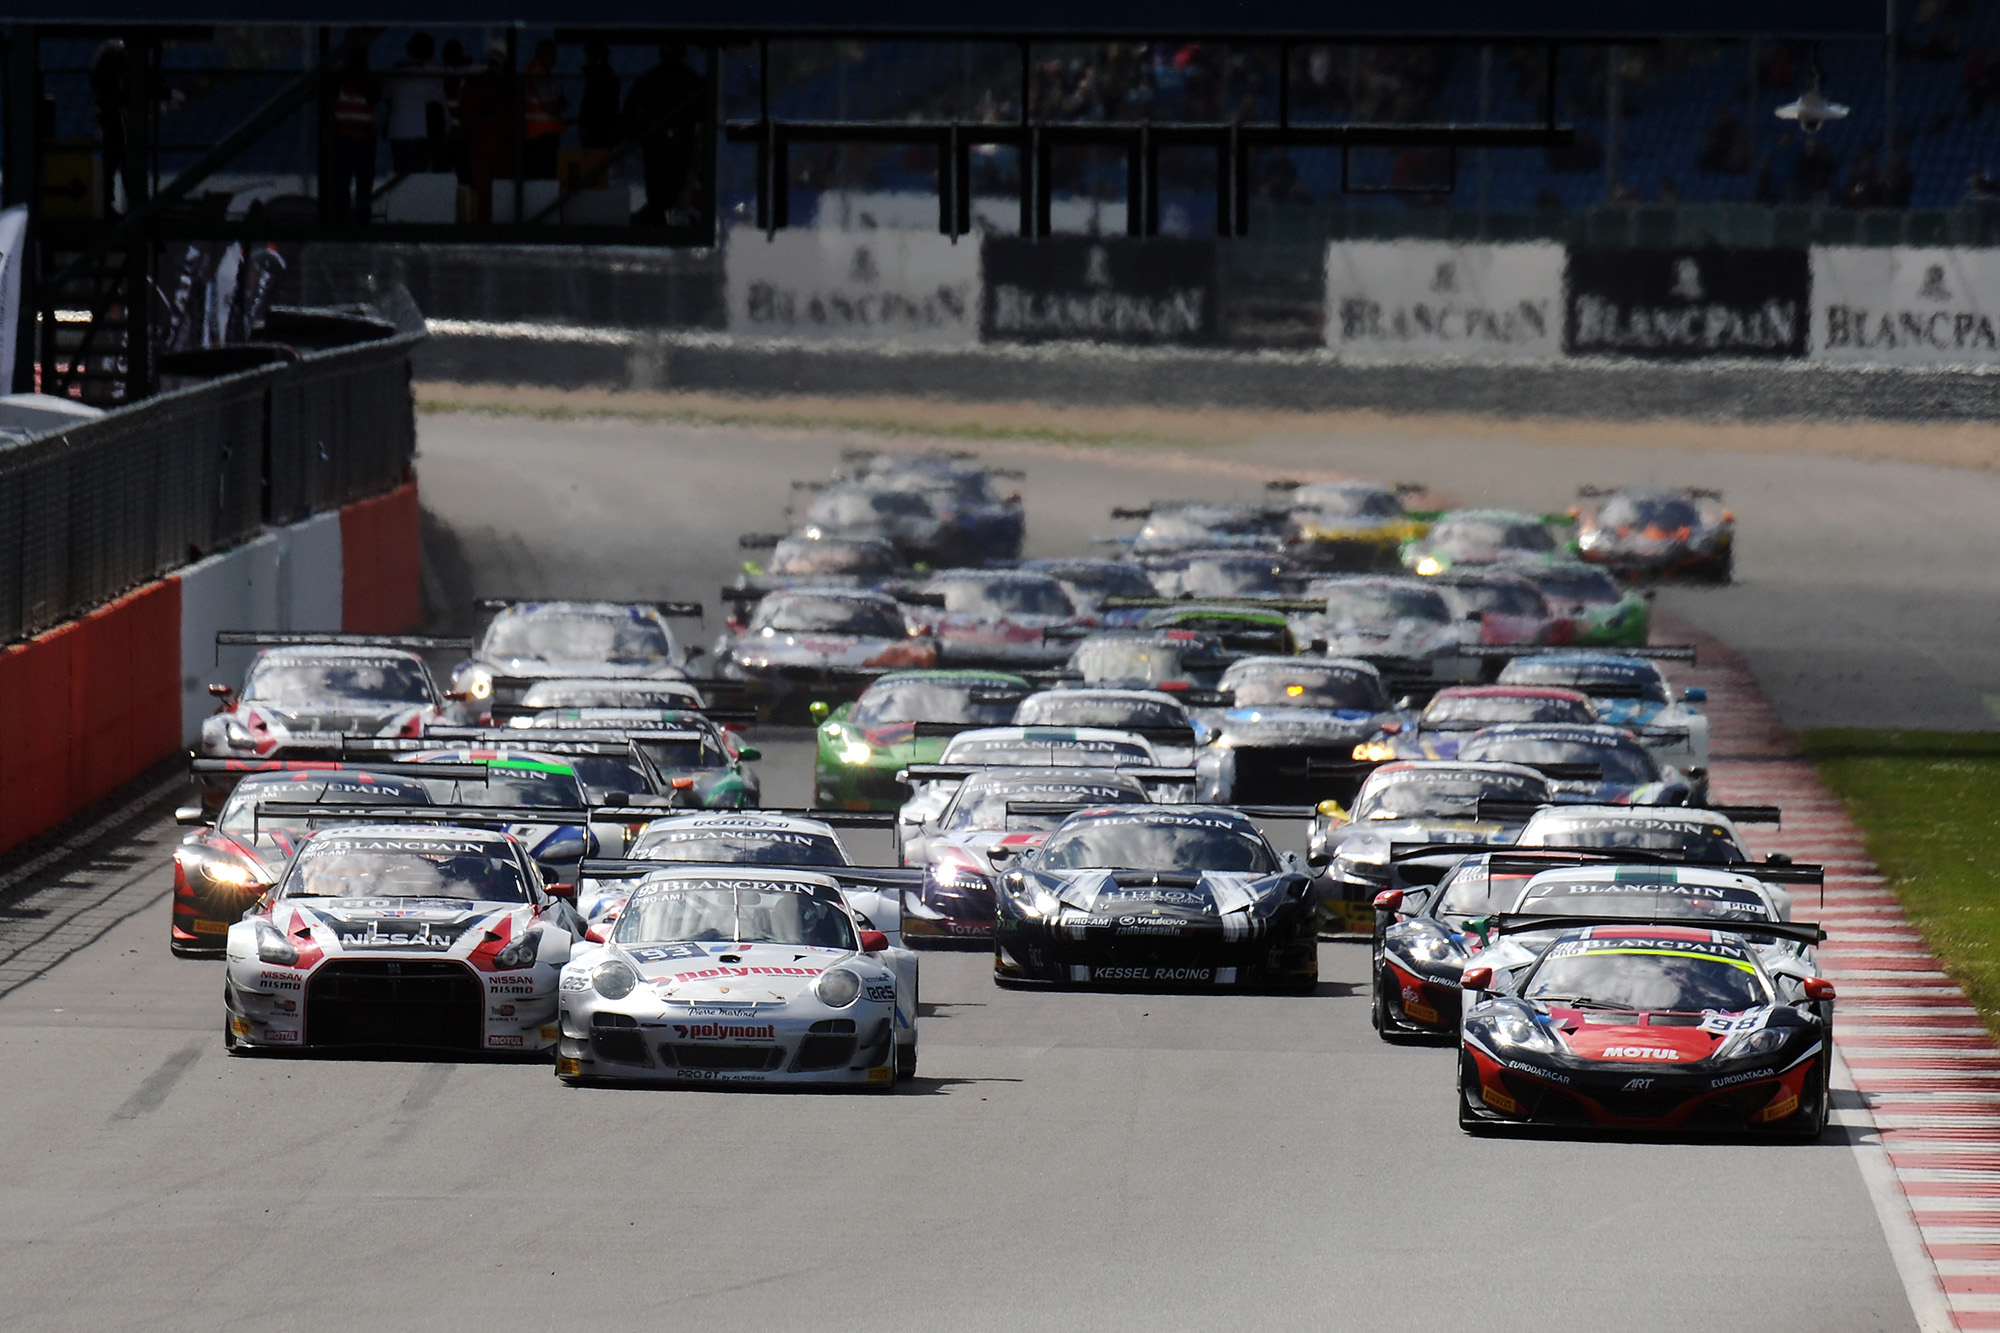 Ticket sales for Silverstone event now online | Official Site of ...